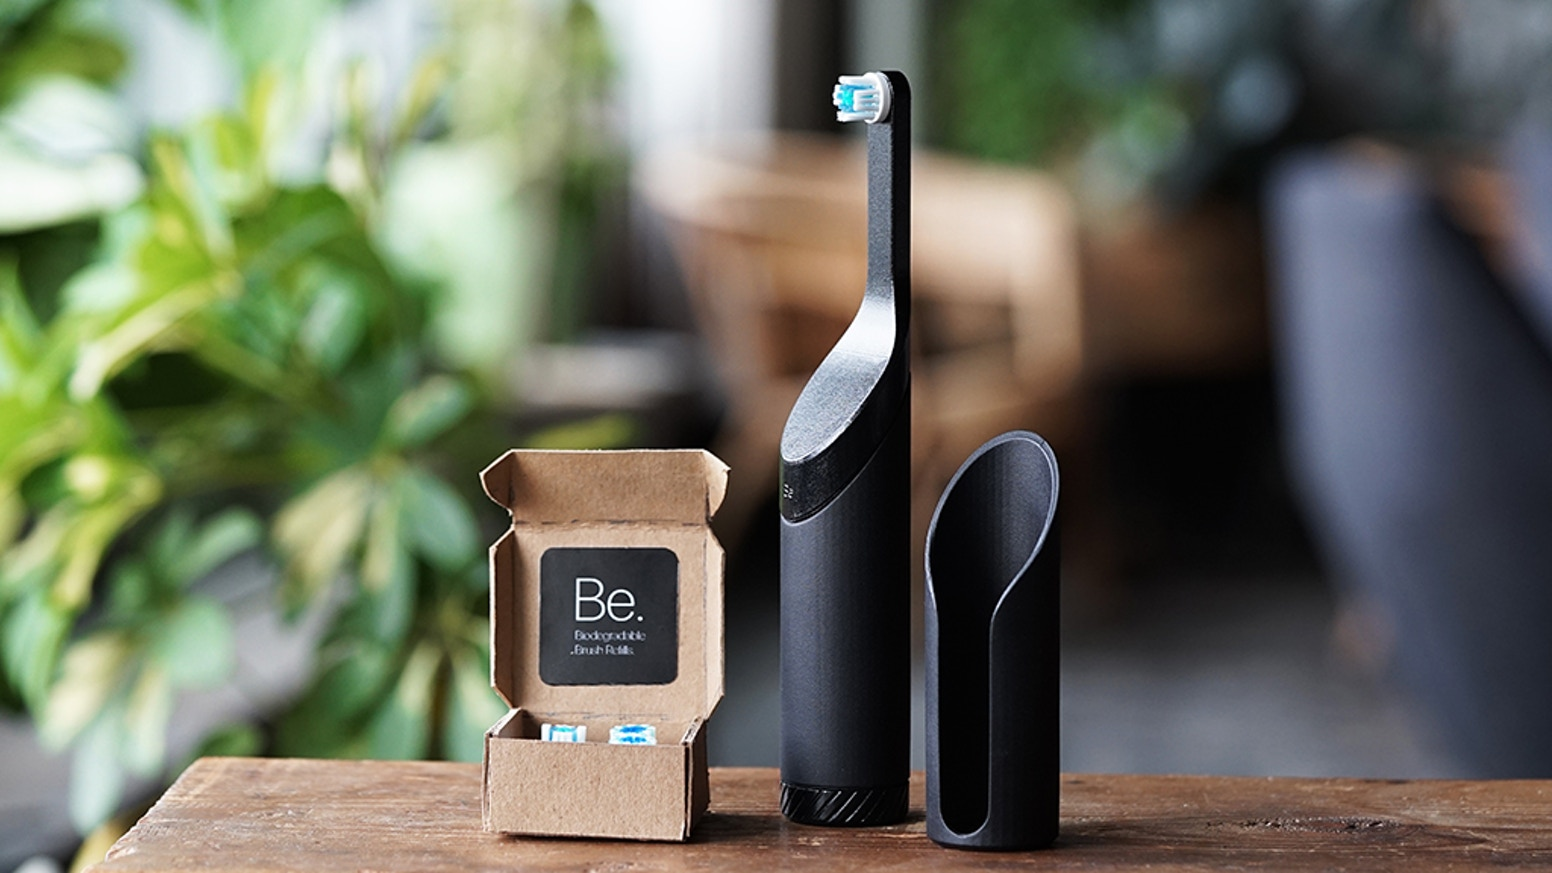 Be. | The First Battery-Free, Powered Toothbrush